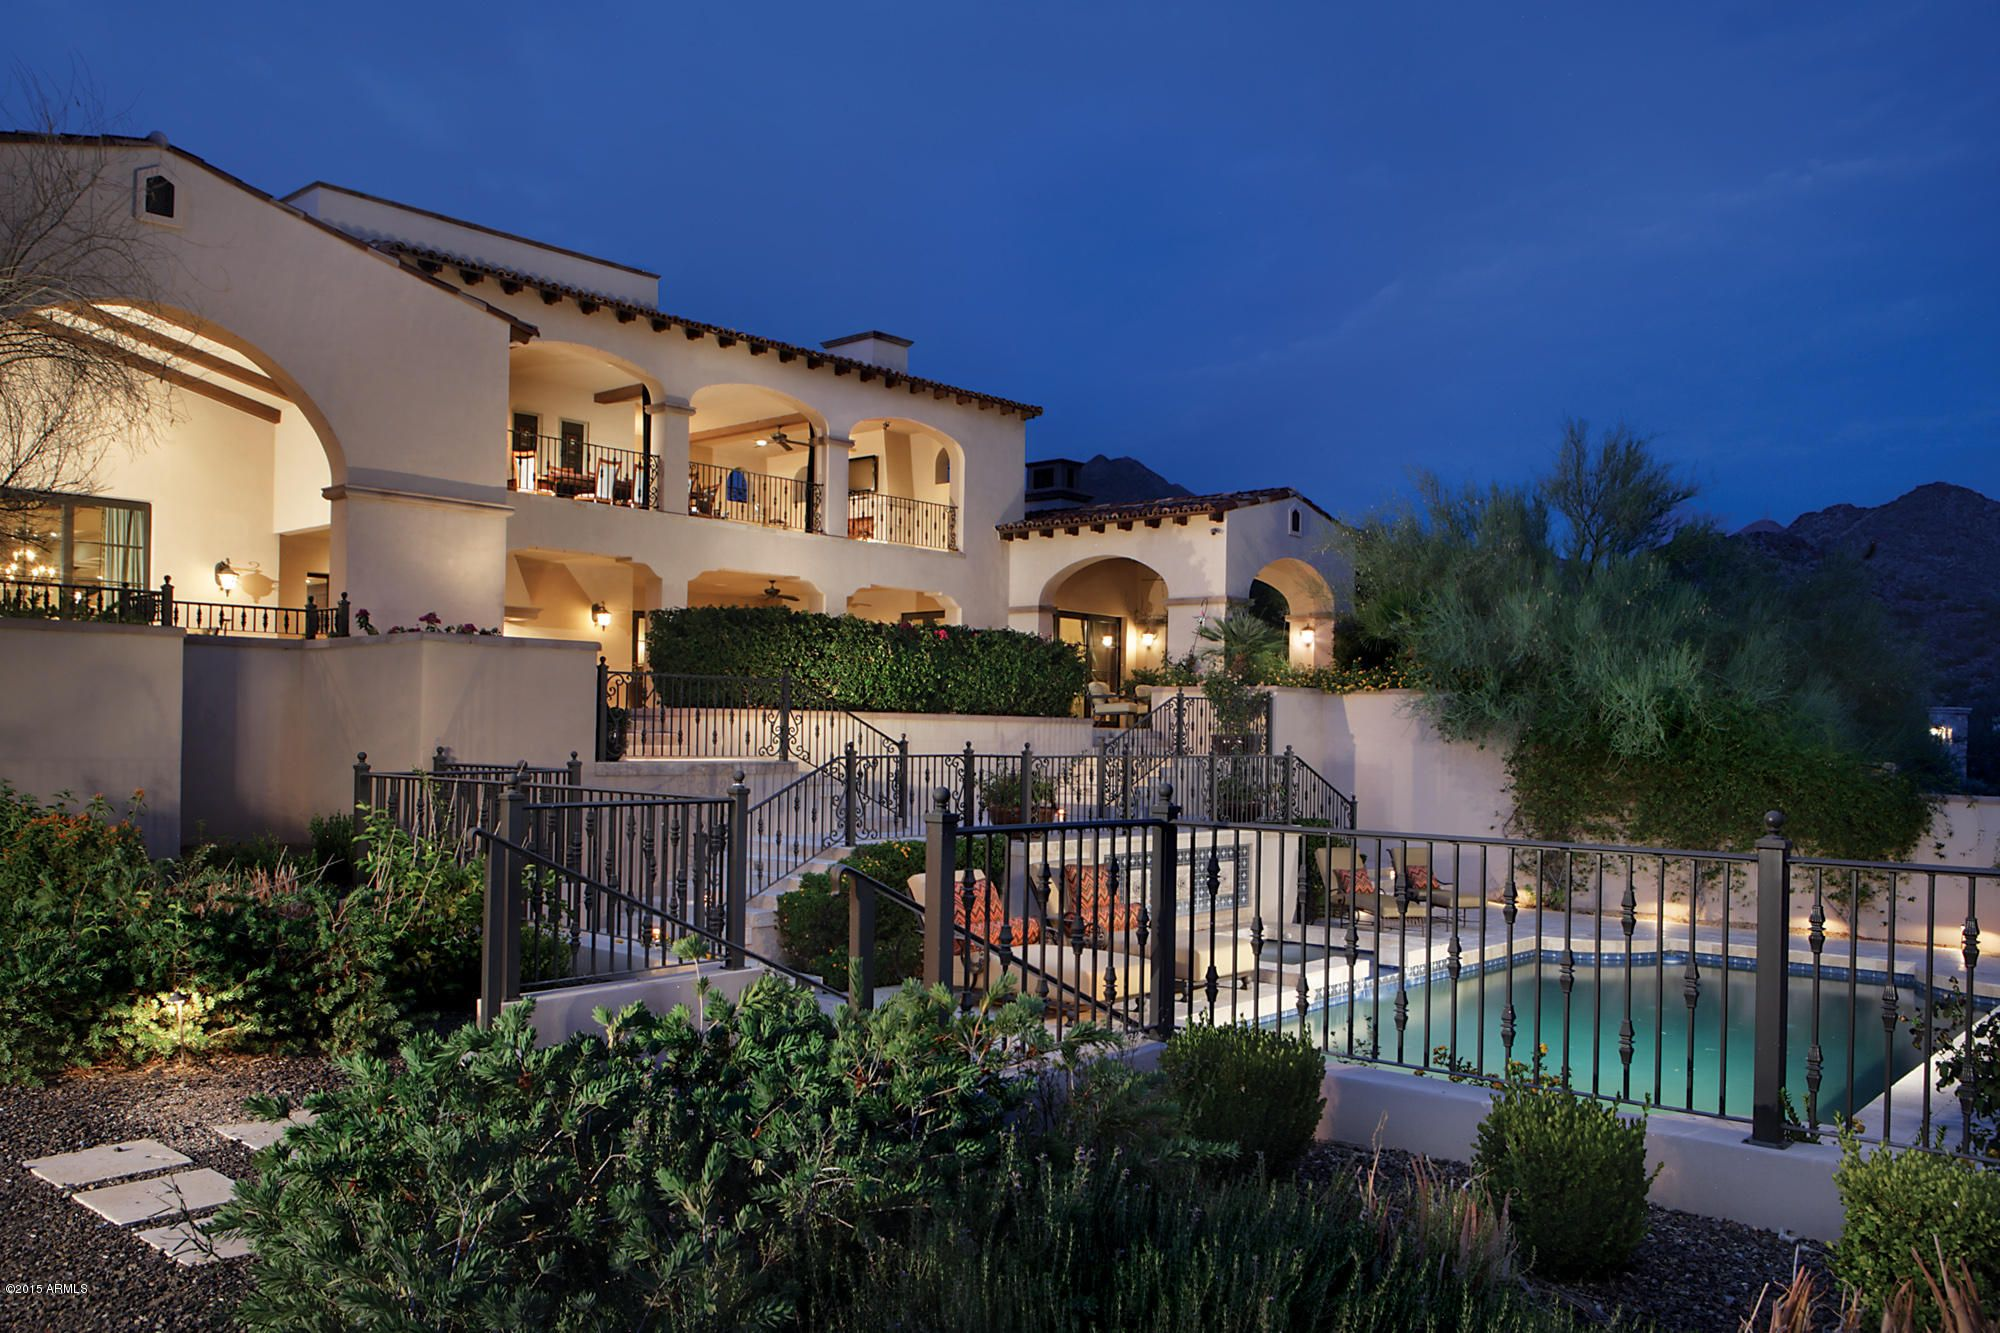 luxury homes for sale in north scottsdale az with a pool - Google Search